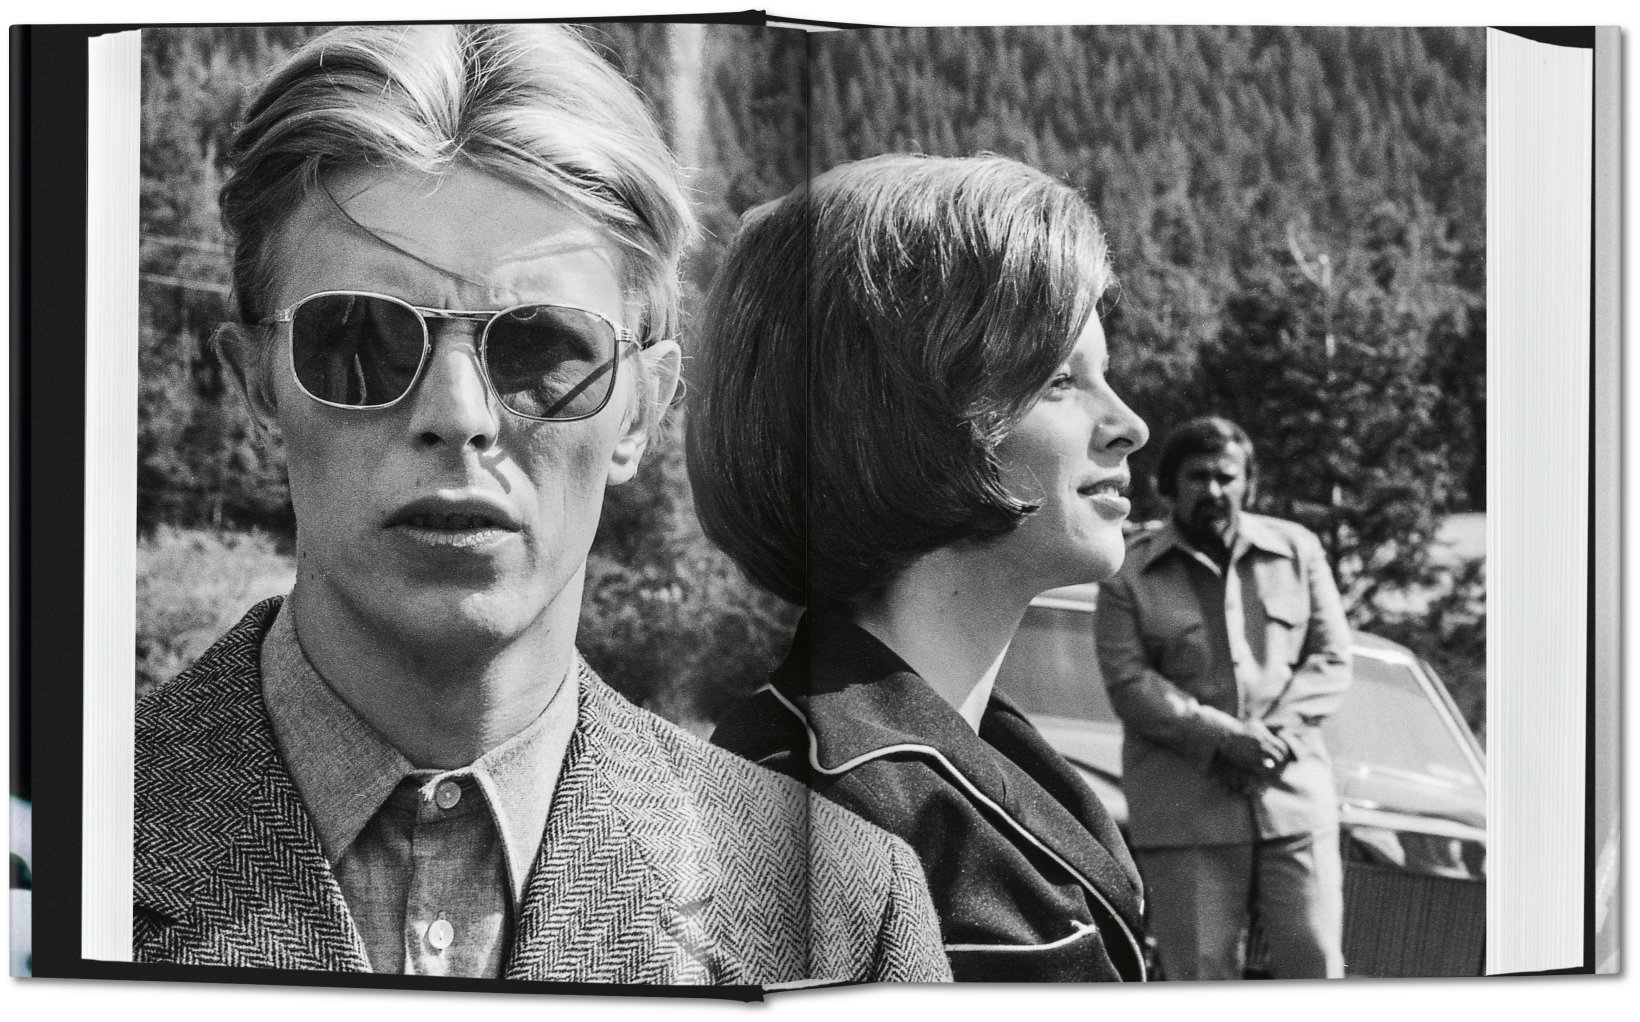 David Bowie At His Best. The Man Who Fell To Earth